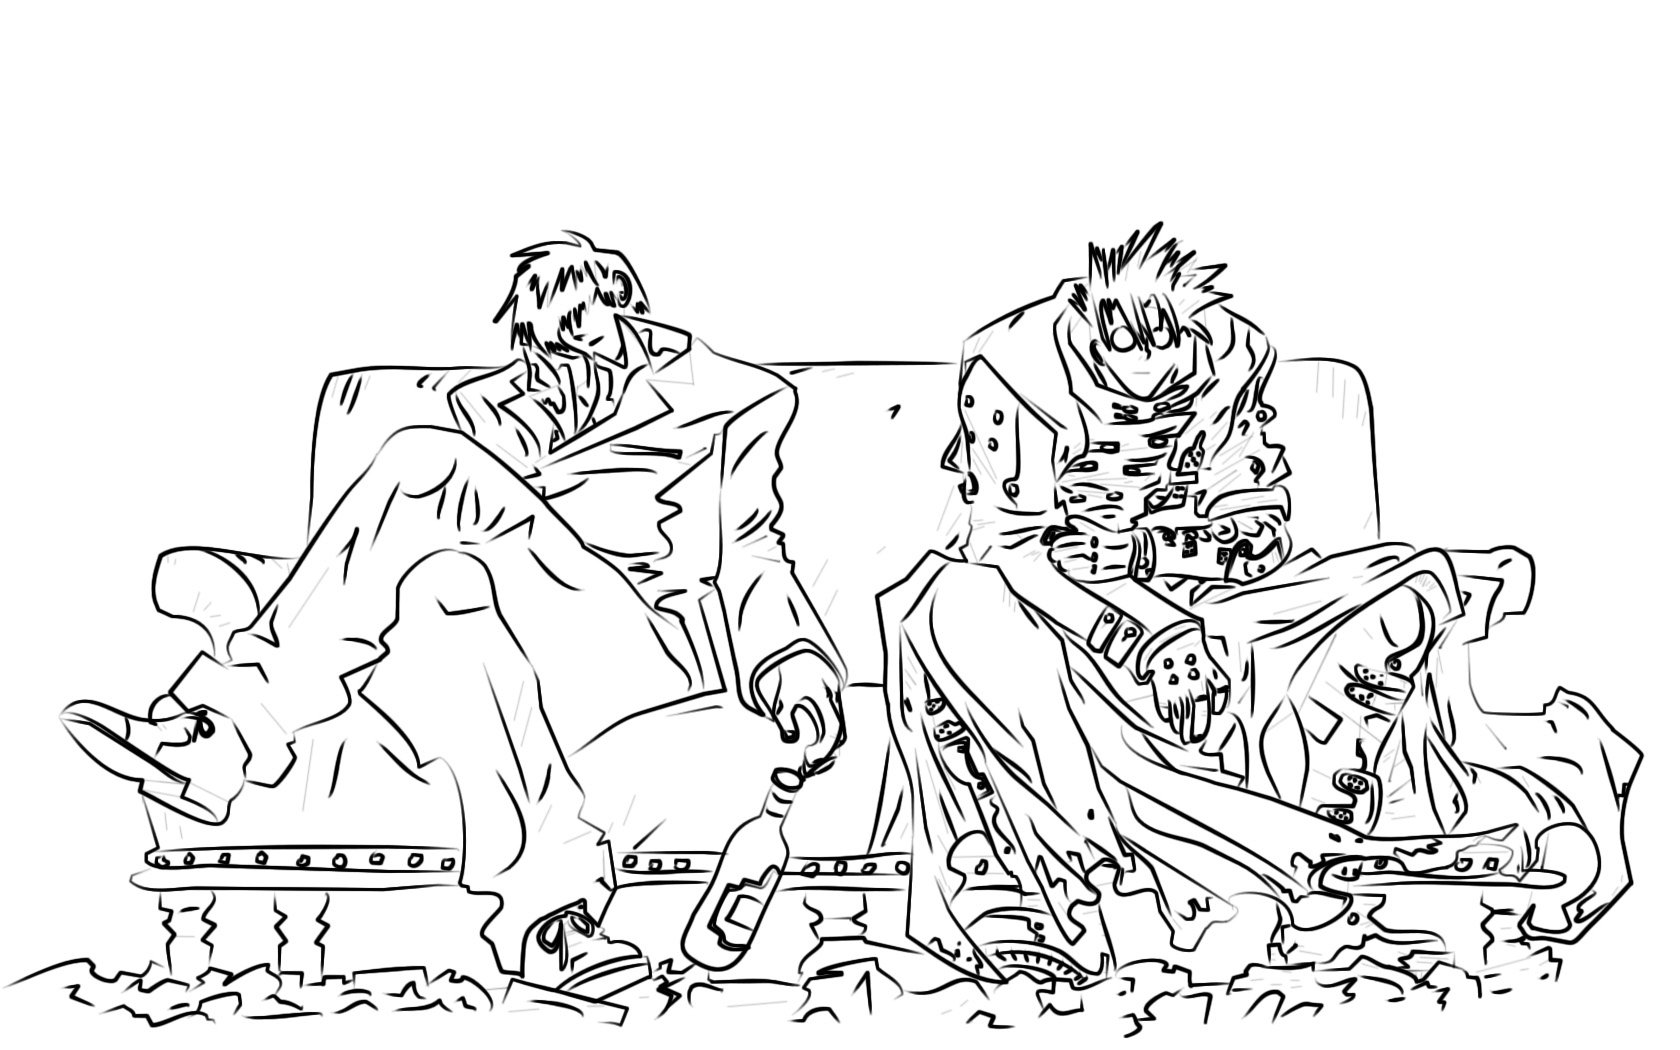 trigun coloring pages | Trigun wallpapers HD for desktop backgrounds